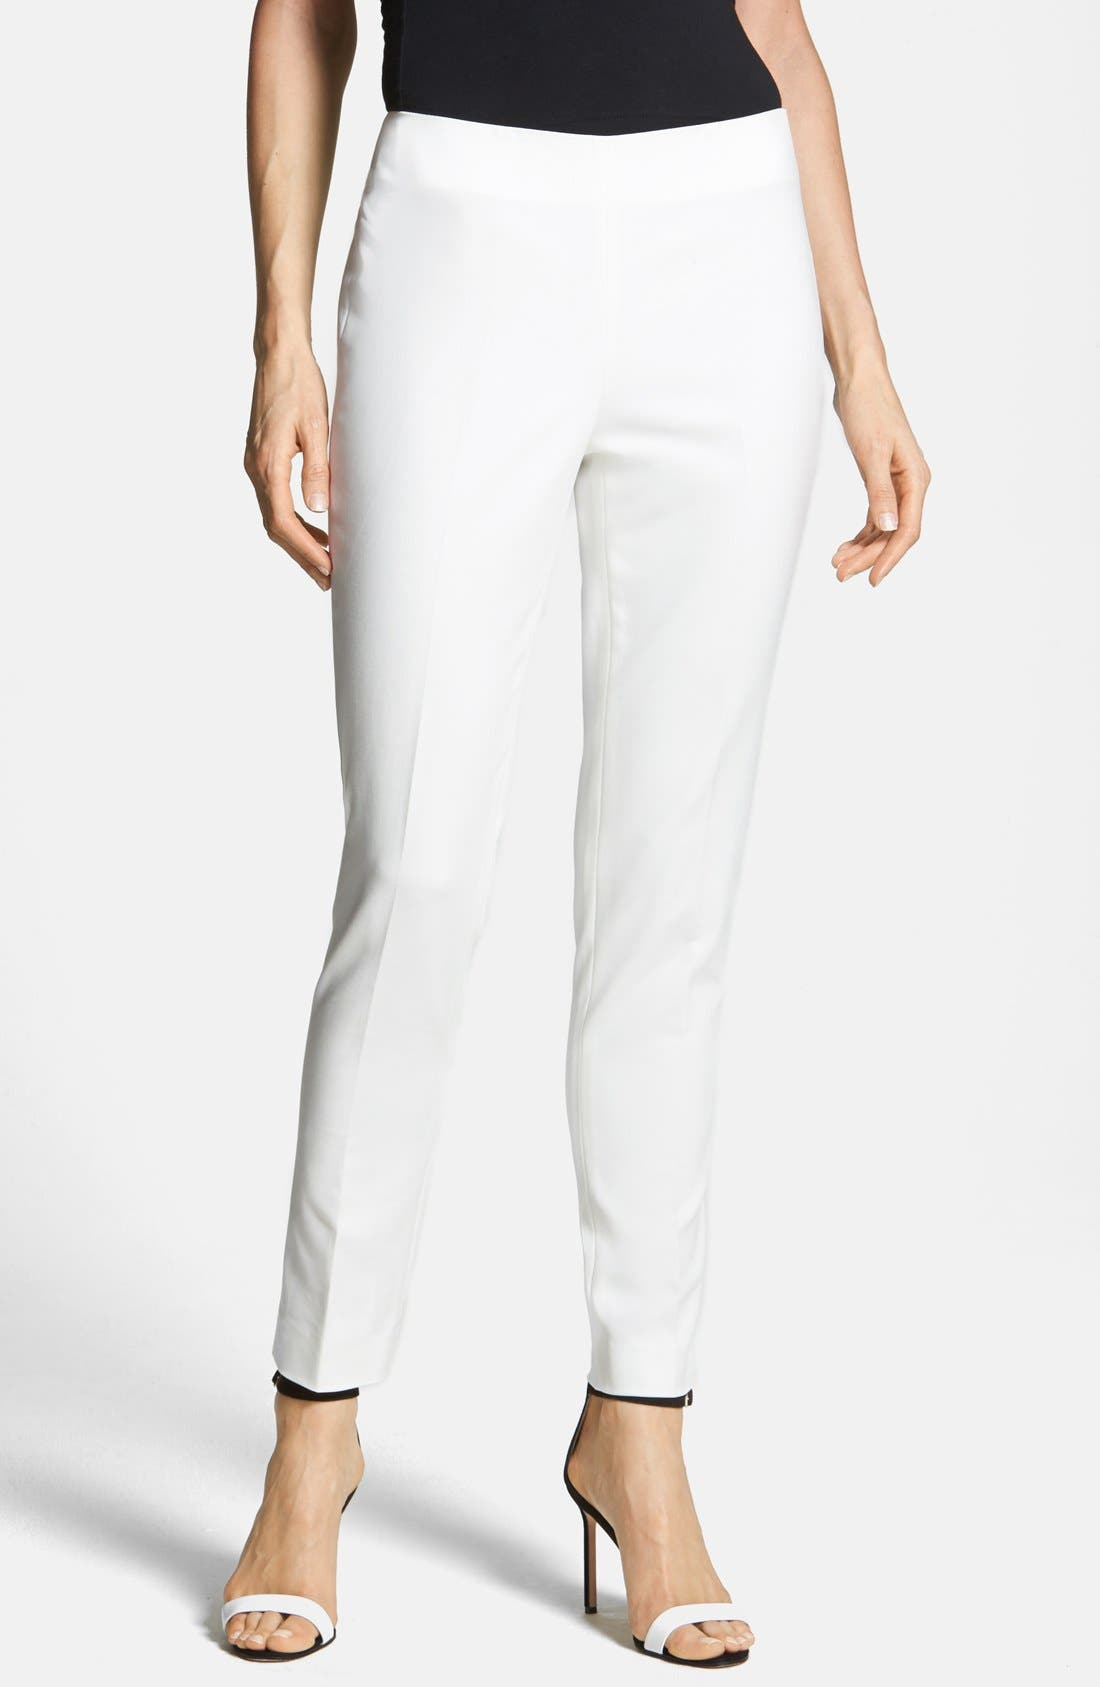 Vince Camuto Side Zip Double Weave Stretch Cotton Pants (Regular & Petite)